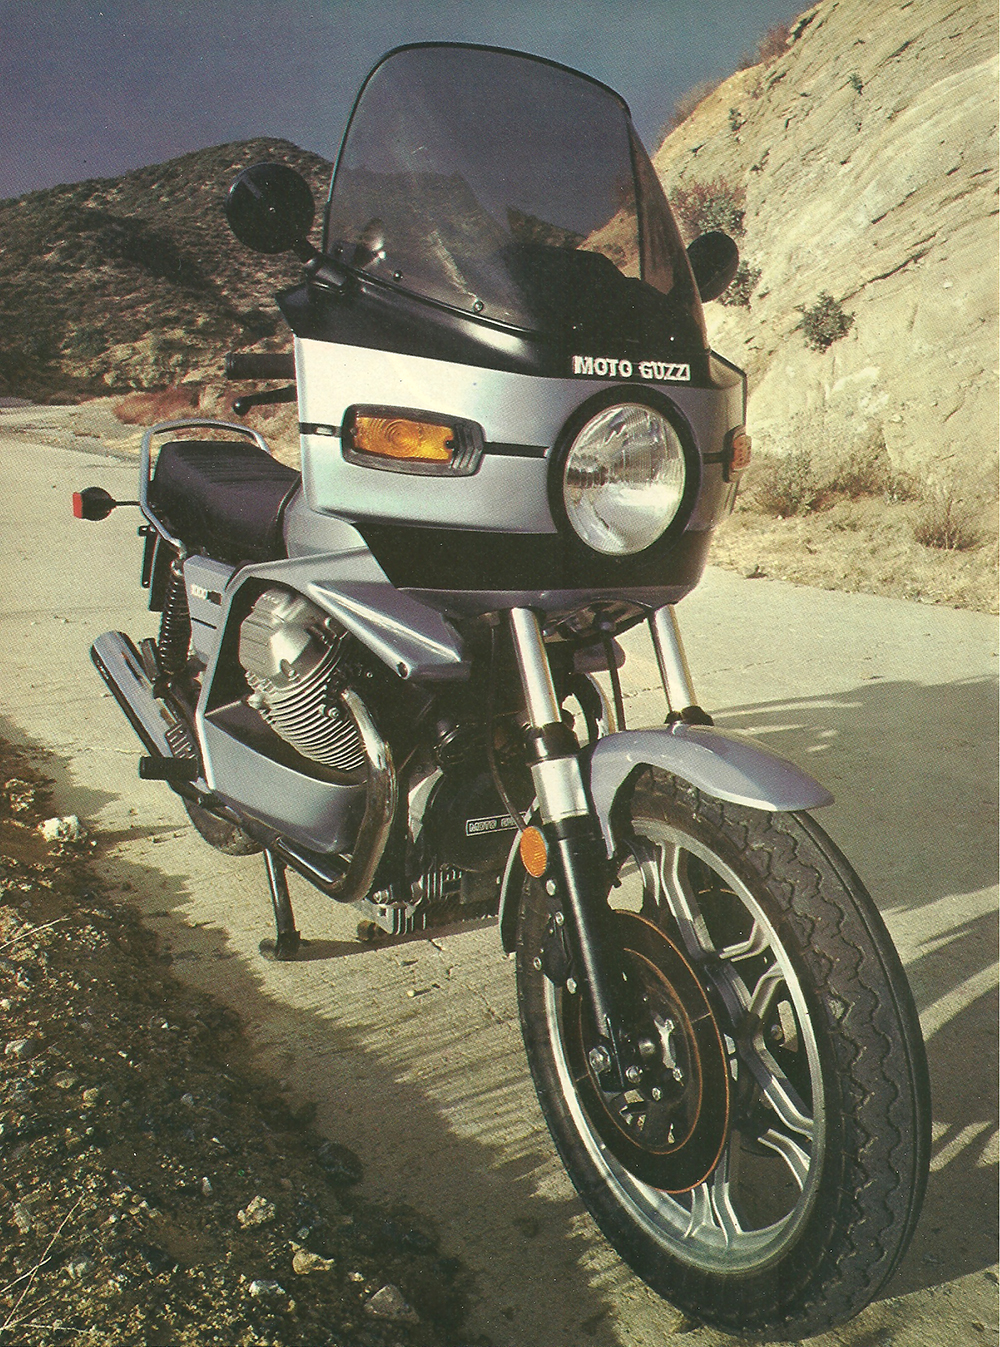 1979 Moto Guzzi 1000 SP road test 03.jpg